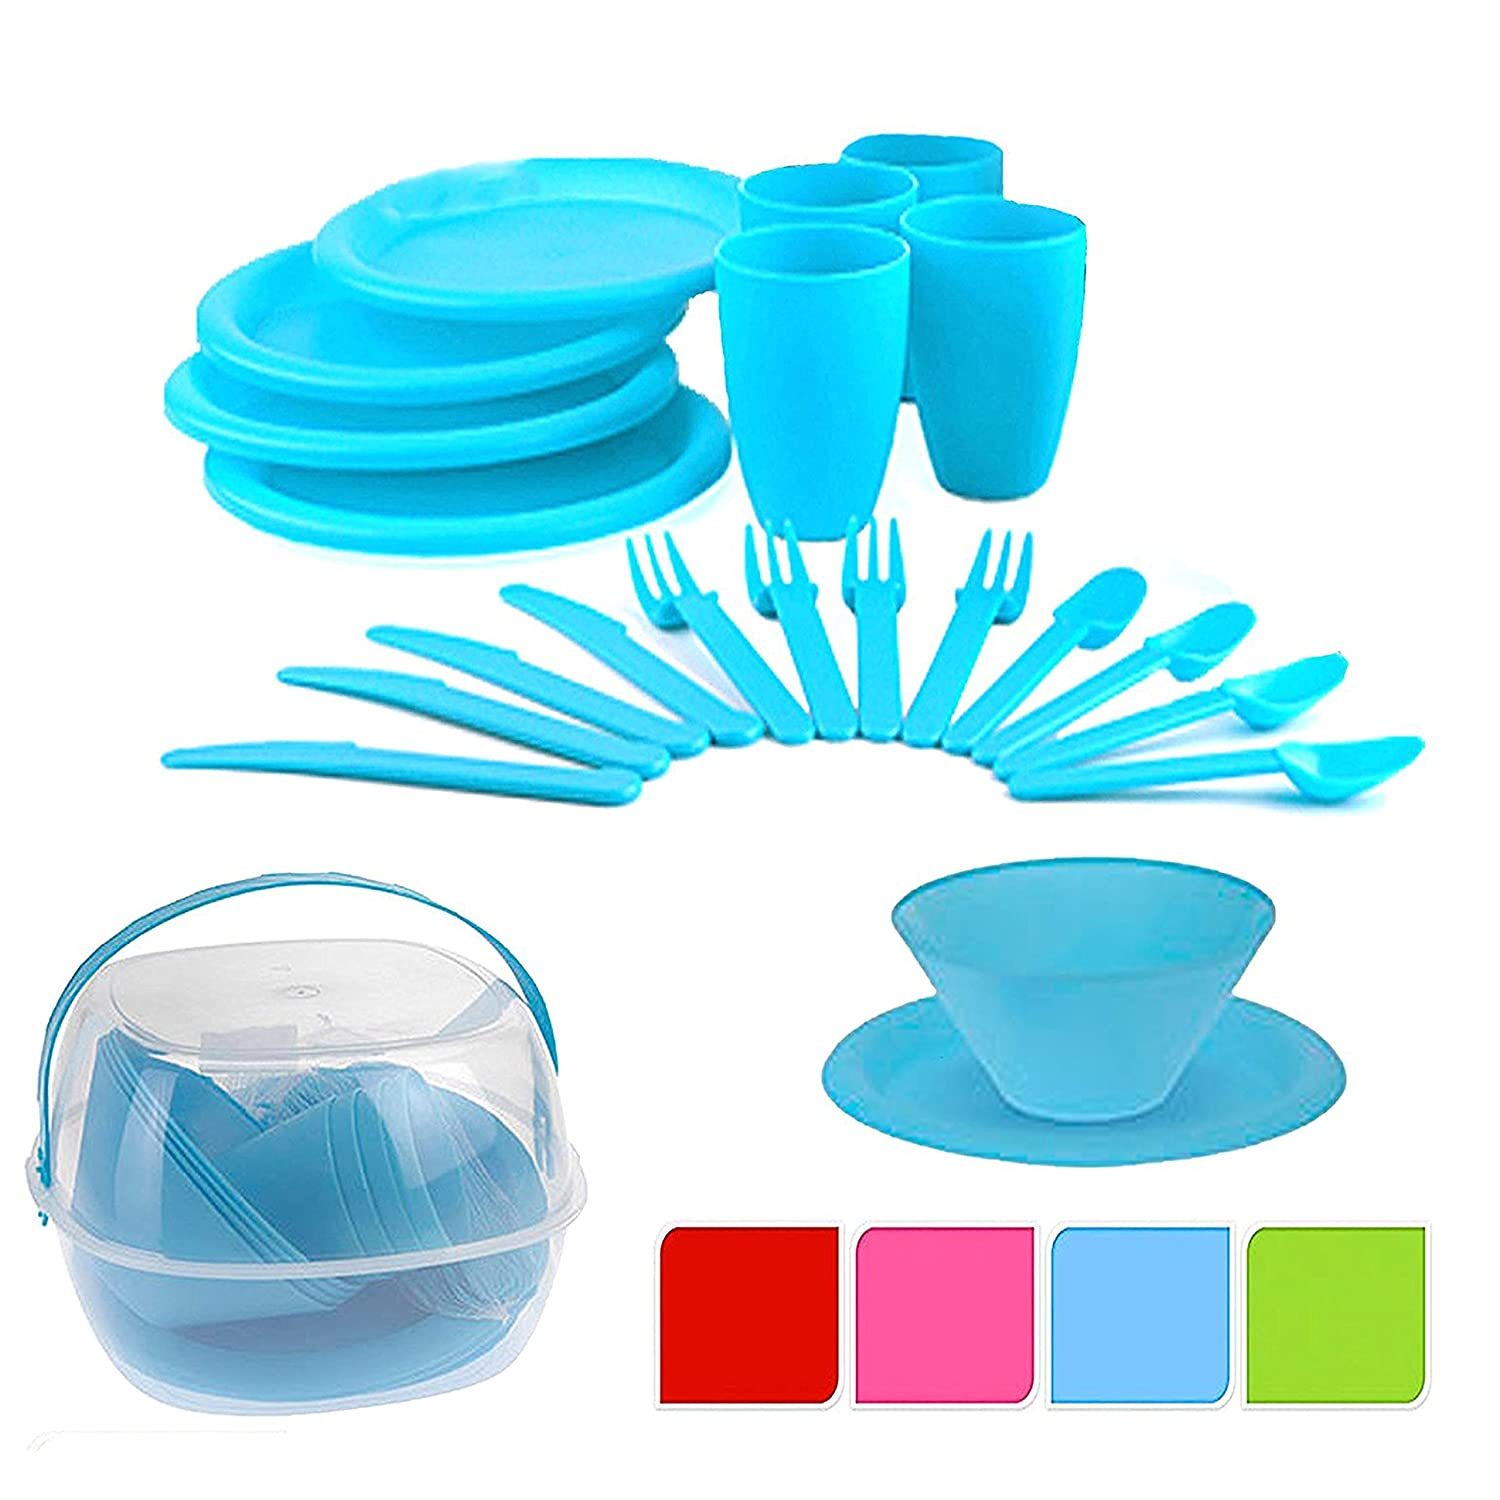 30 Piece Plastic Picnic Camping Party Dinner Plate Mug Cutlery Set Storage Box The Magic Toy Shop 8711295447037